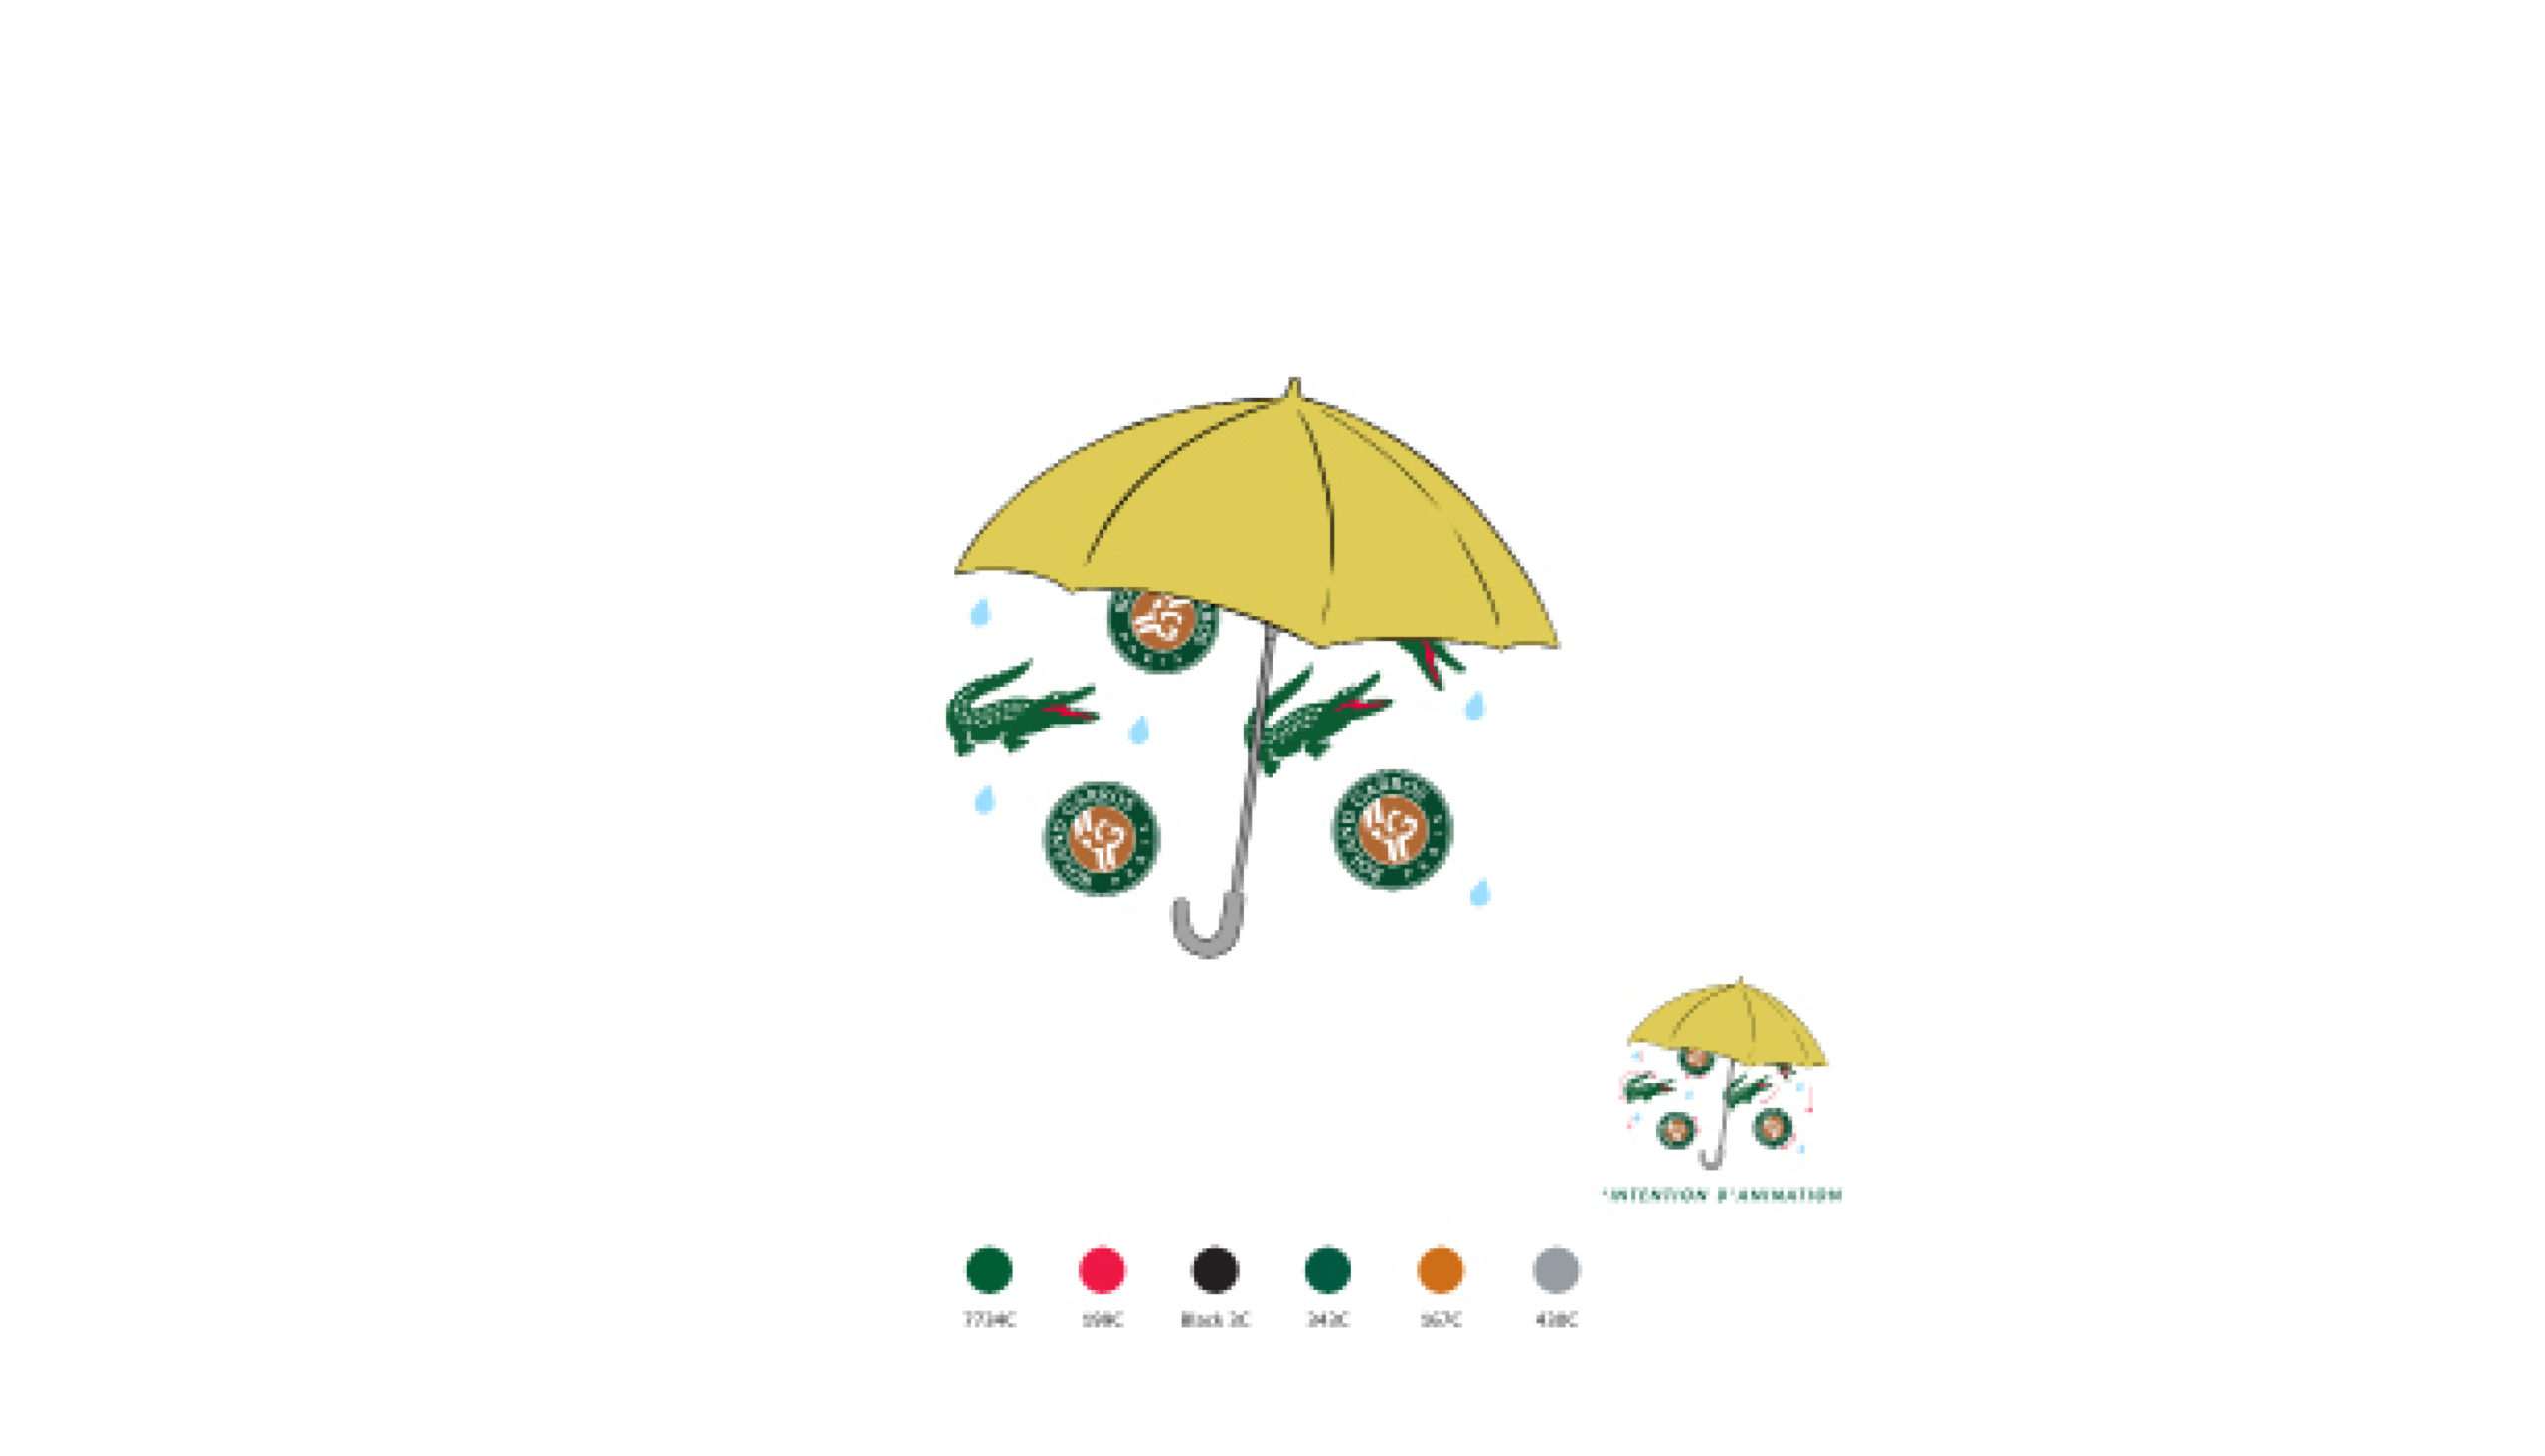 LACOSTE_STICKERS_HOBBYNOTE_R_0415